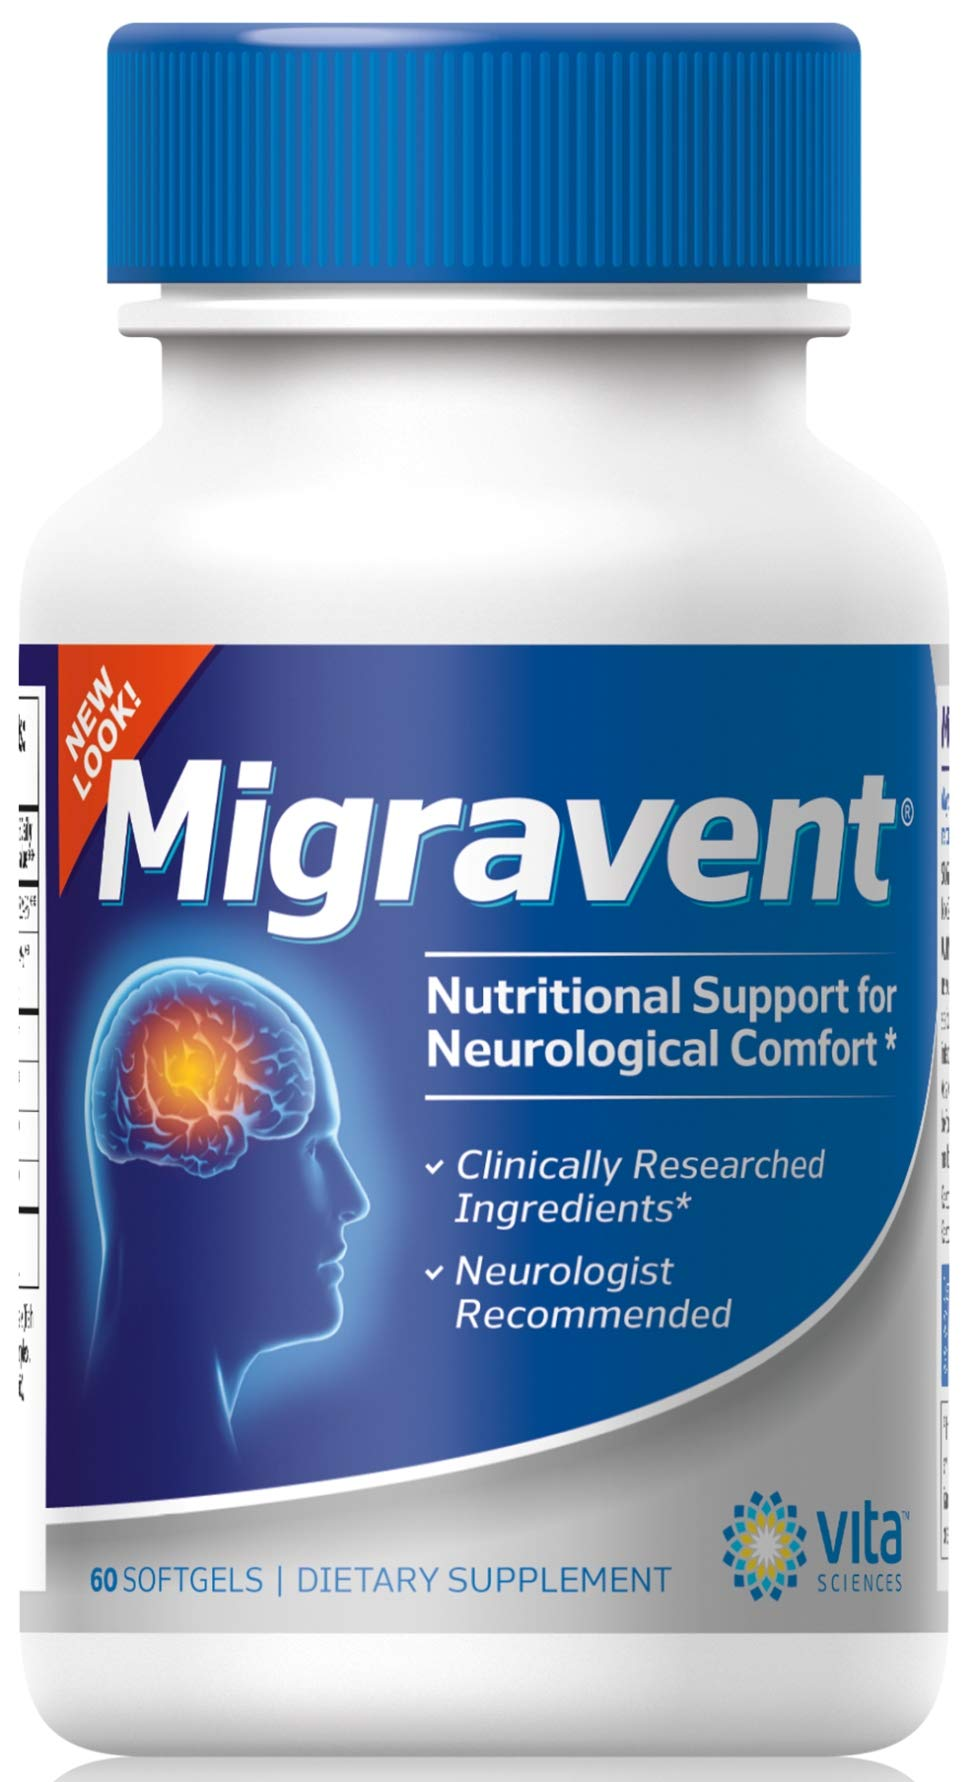 Migraine Relief Clinics Recommend Migravent as #1 Supplement to Support Optimal Cranial Comfort & Health, w/Vitamin B2, Riboflavin, Magnesium, Coenzyme Q10, PA-Free Butterbur. by Vita Sciences